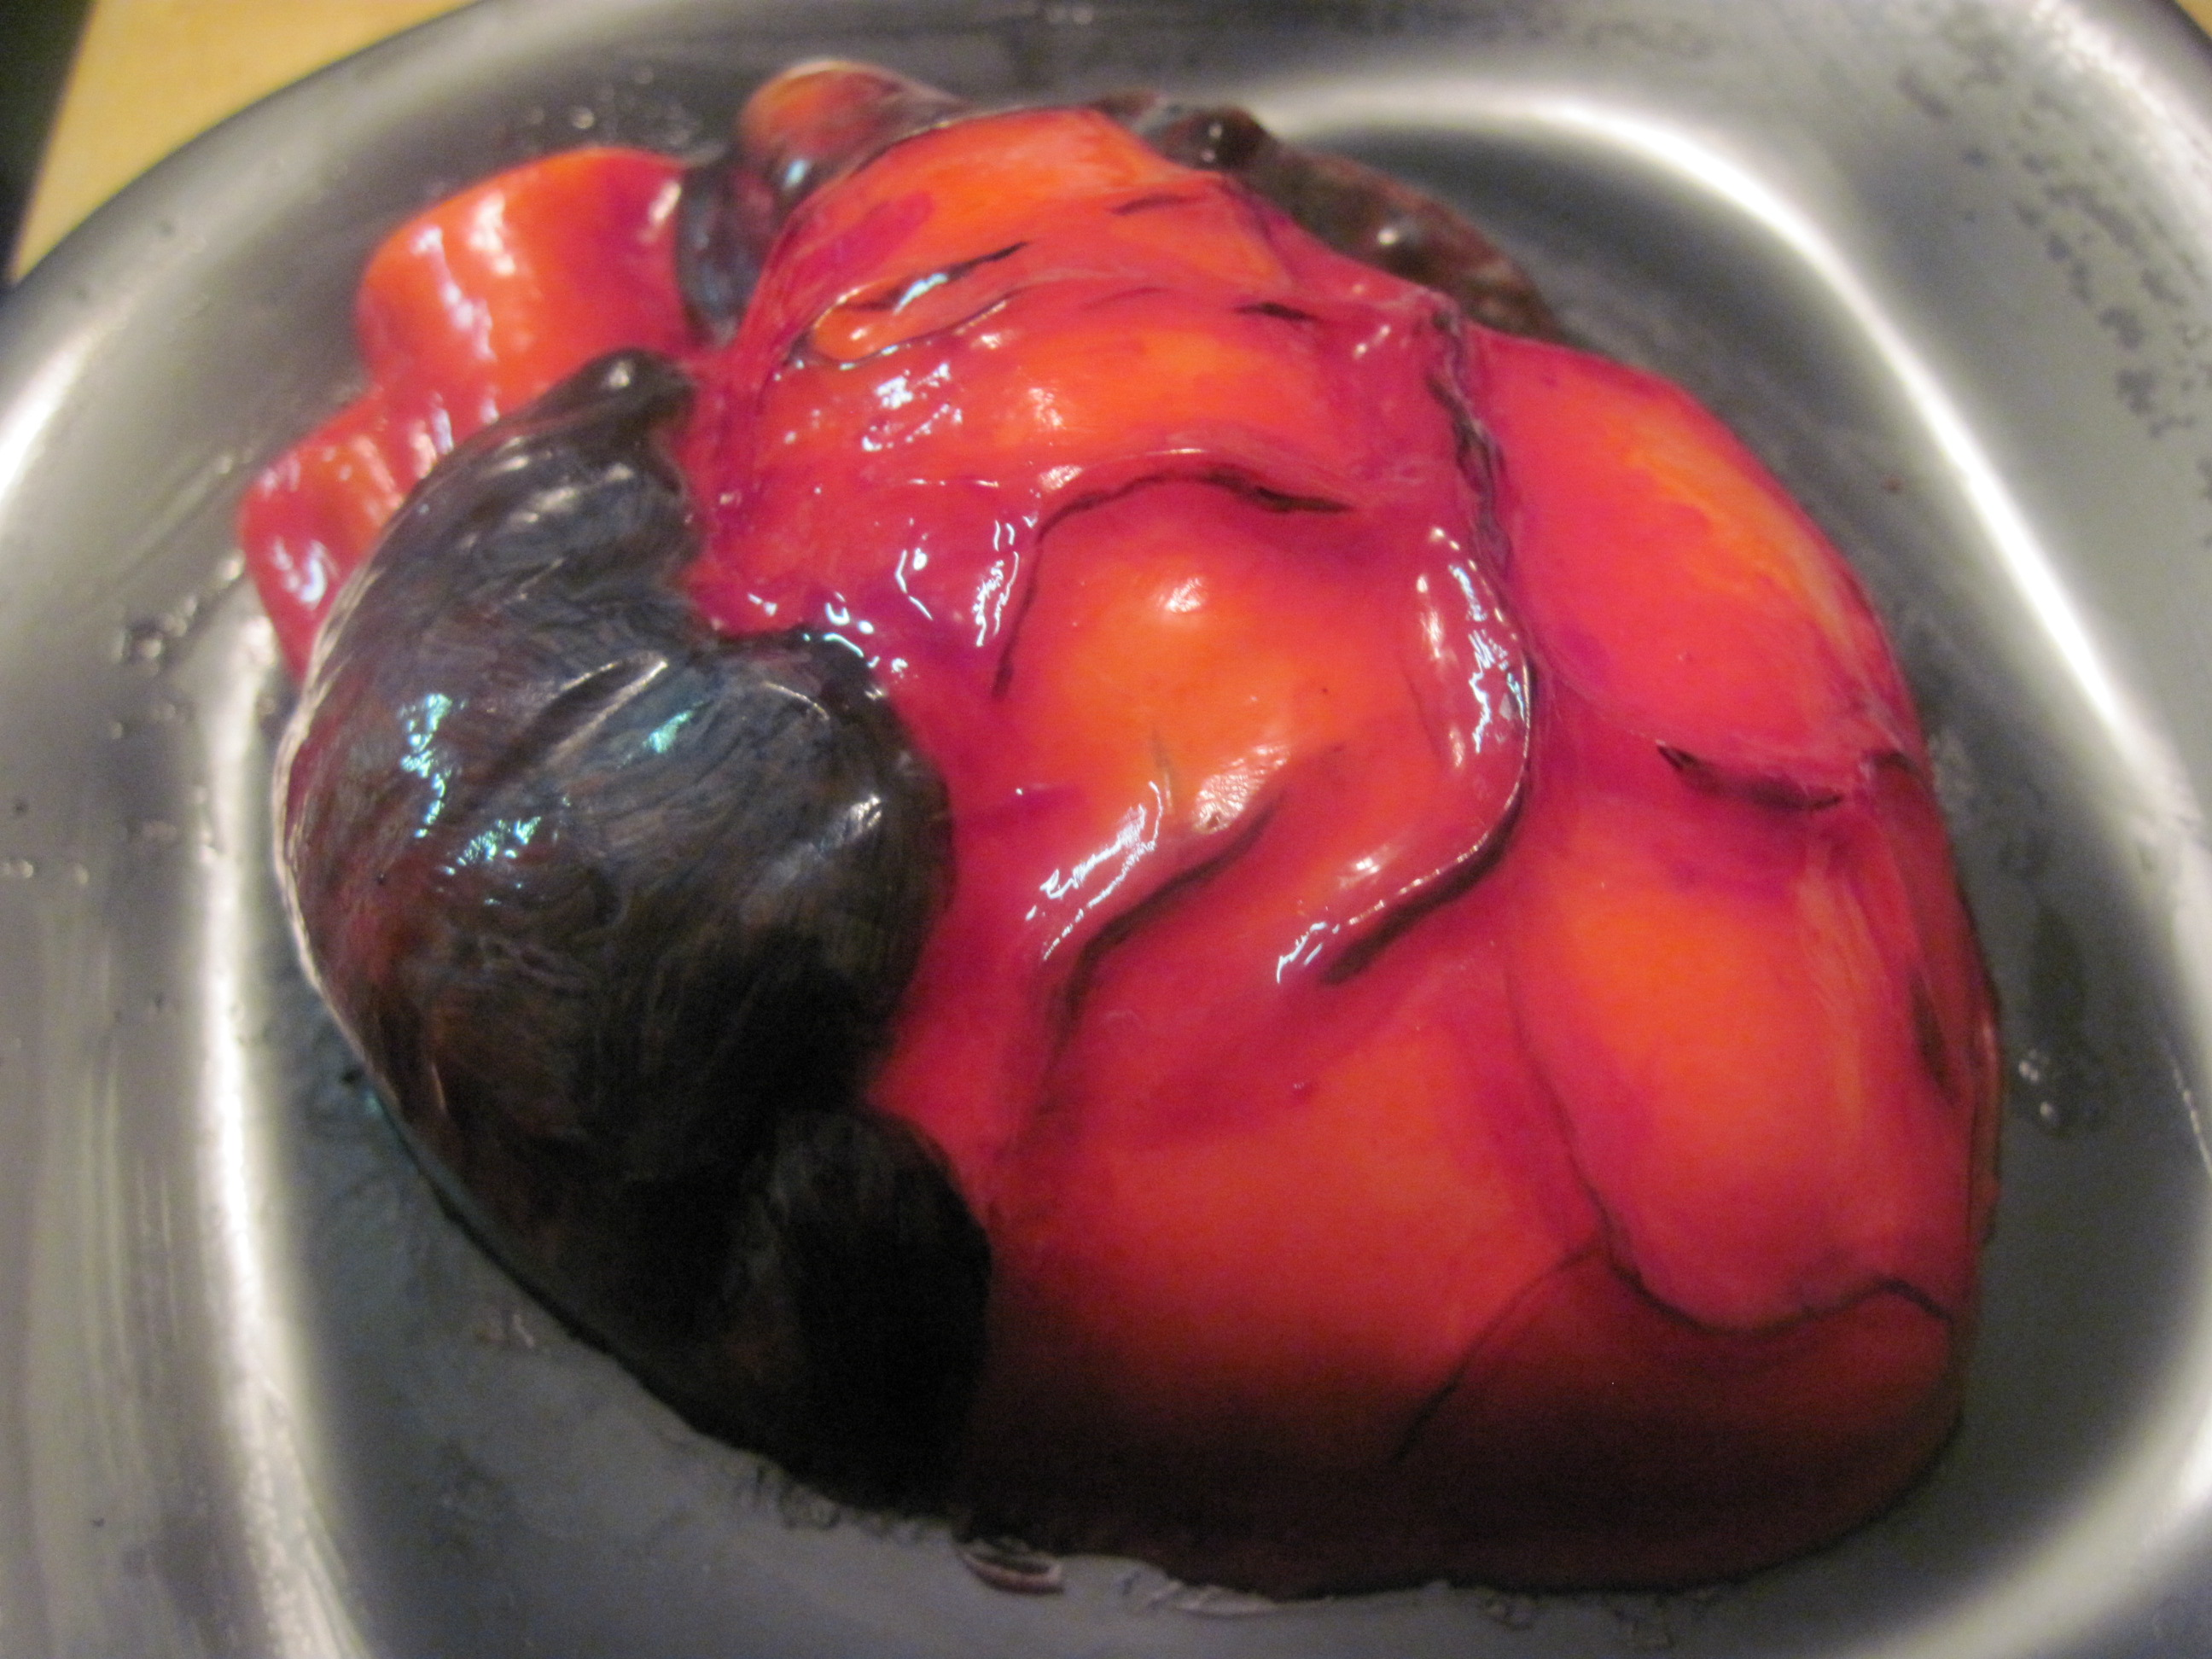 gelating-heart-frightening-foods-010.jpg